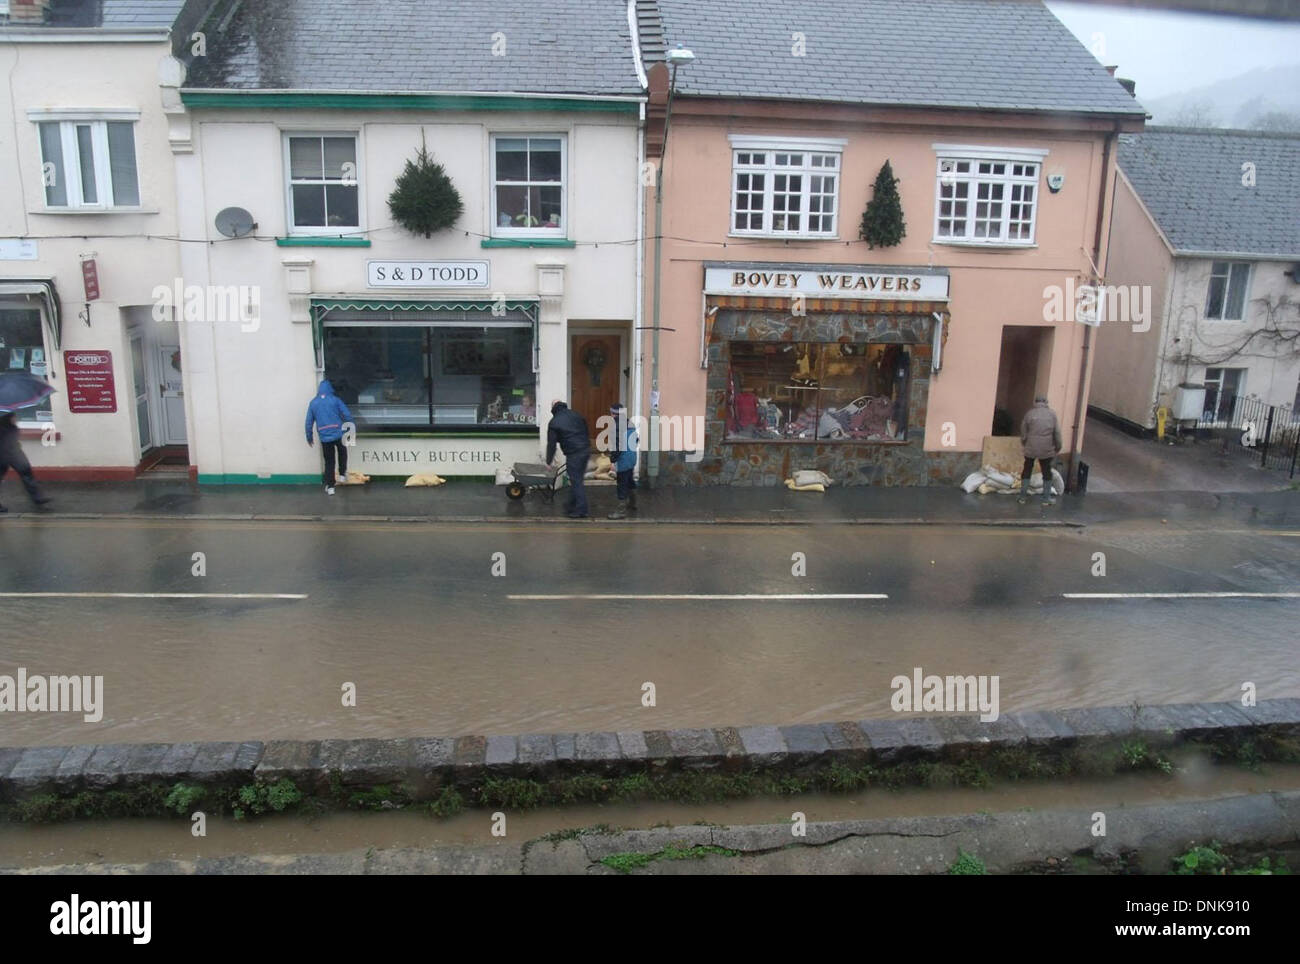 Bovey Tracey, Devon, UK. 1st January 2014. Heavy rain caused floods in Bovey Tracey. Credit:  nidpor/Alamy Live News - Stock Image